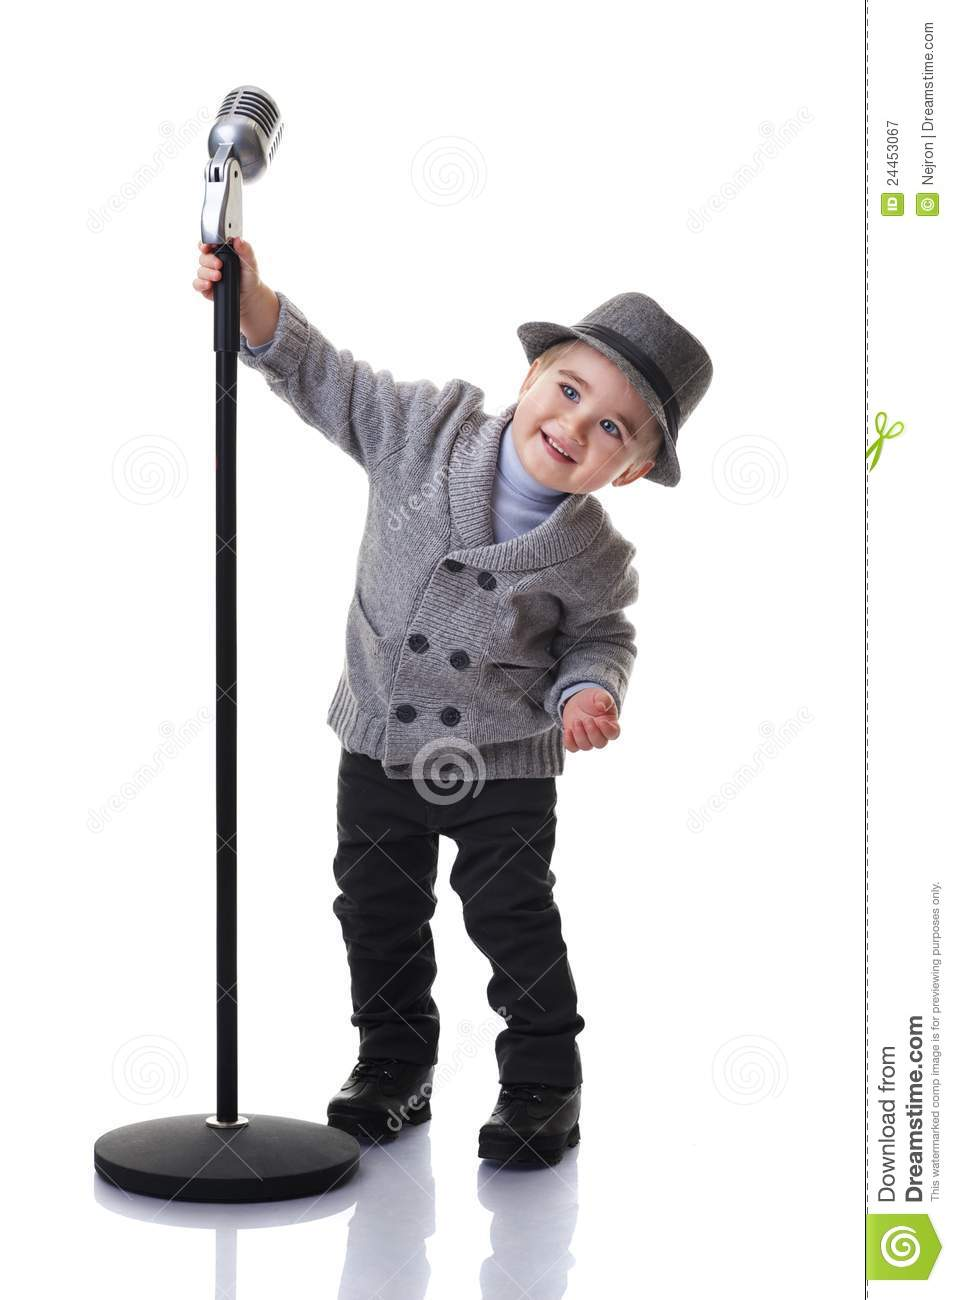 Smiling Boy Holding A Microphone Stand Royalty Free Stock ... Positive Space Photography